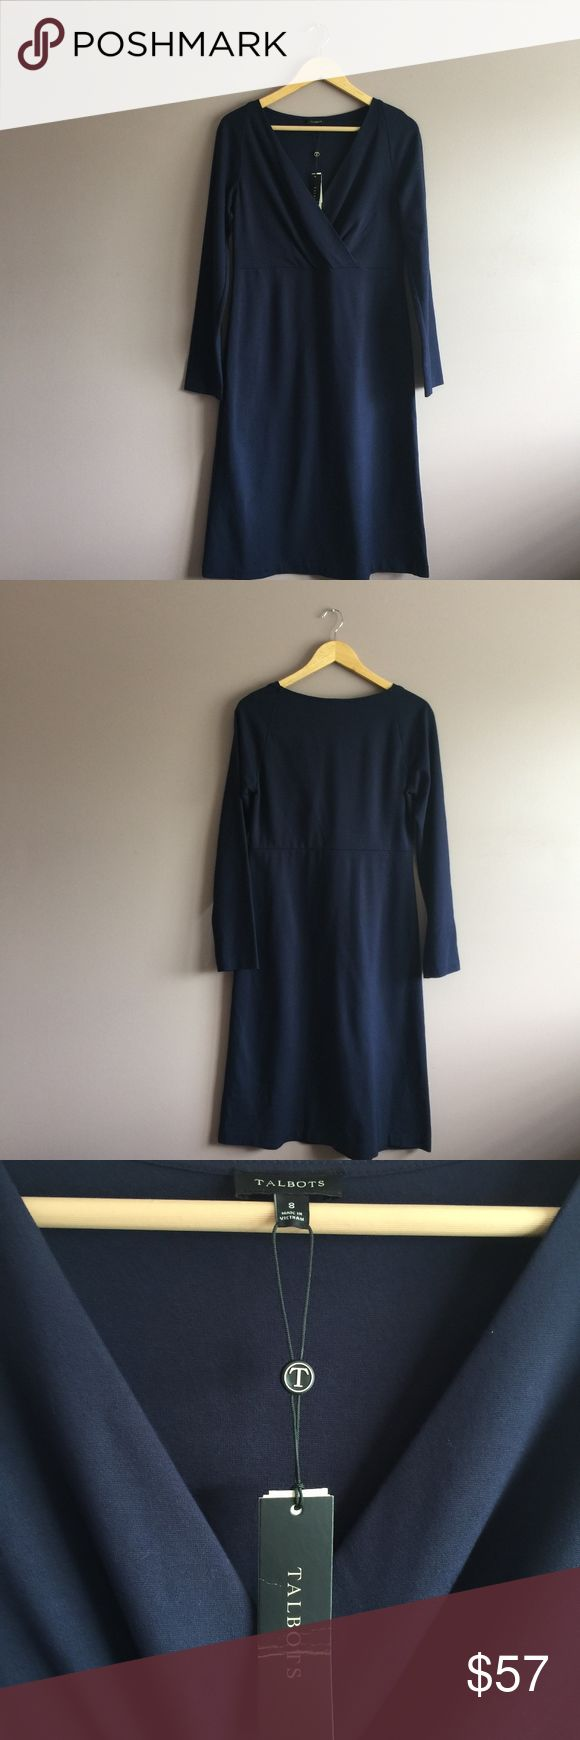 Women's Talbots Navy Blue Dress Size 8 Elegant and beautiful Size 8 New with Tags long sleeve v-neck navy dress with soft a material that is very comfortable and from a smoke-free/pet-free home. Offers are always welcome. Bundle for additional savings and reduced shipping cost. 1-business day shipping.  Material is 63% rayon, 32% rayon, and 5% spandex. Talbots Dresses